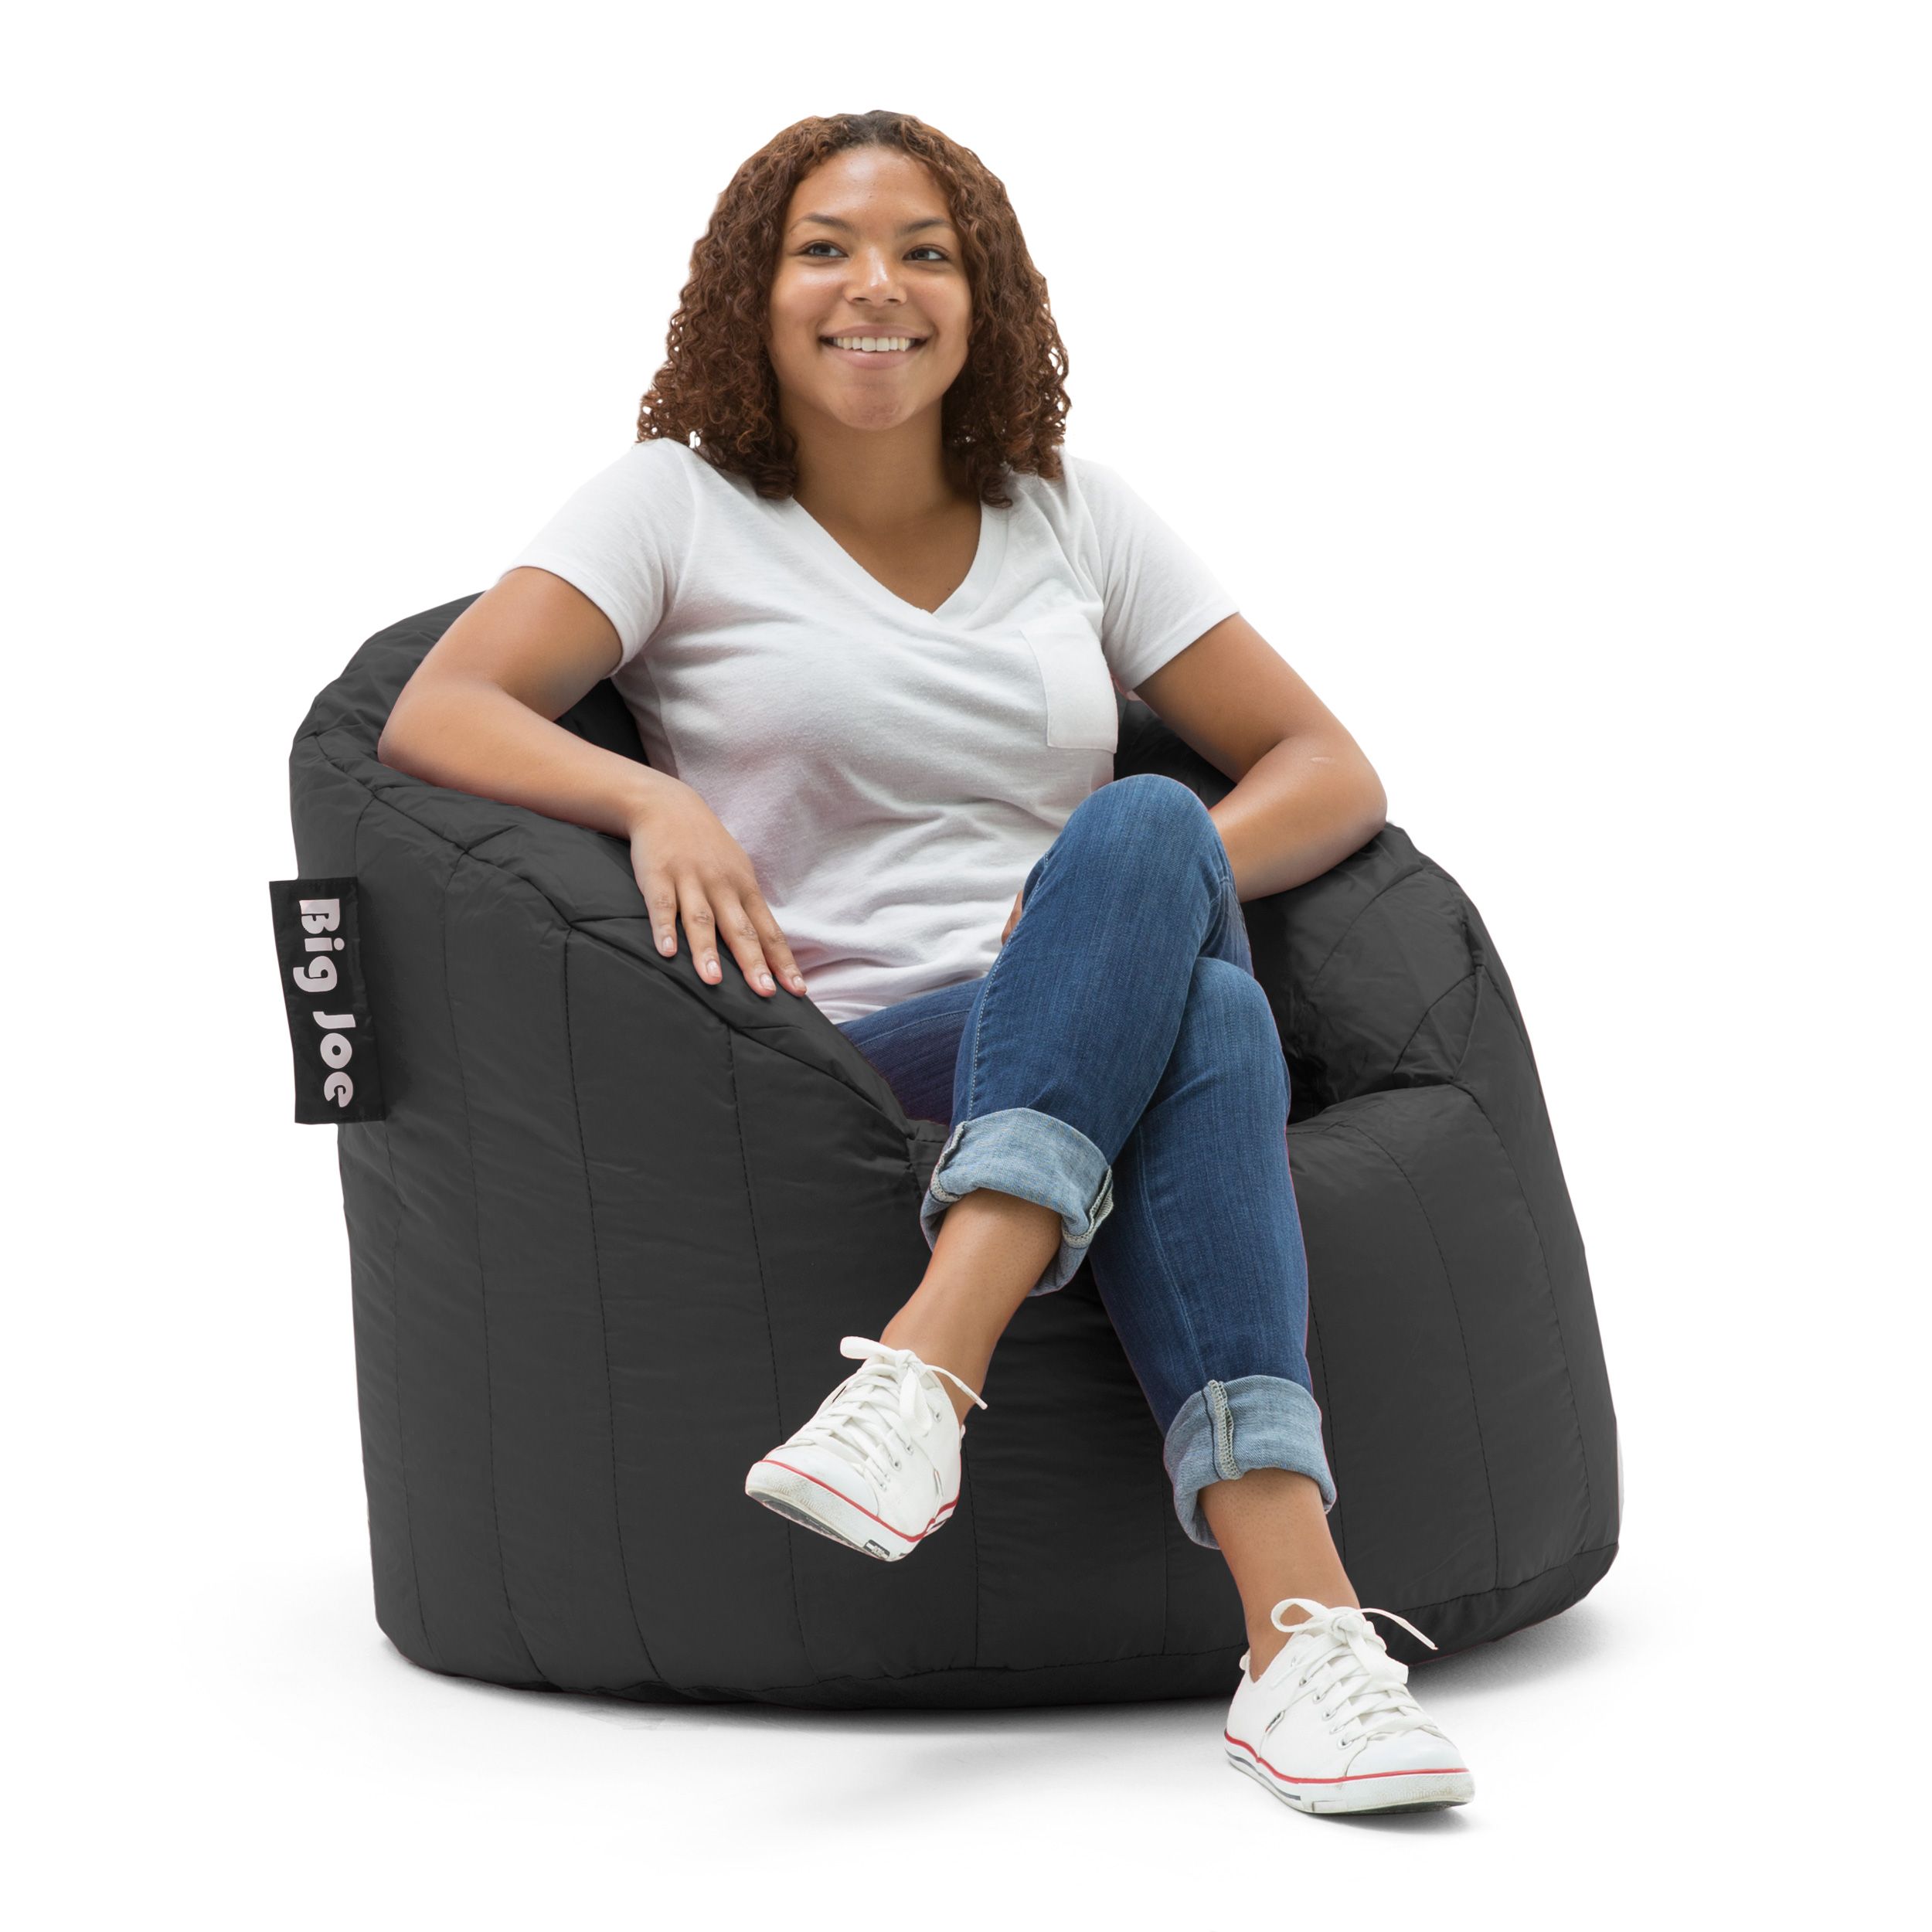 Ordinaire Big Joe Lumin Bean Bag Chair, Available In Multiple Colors